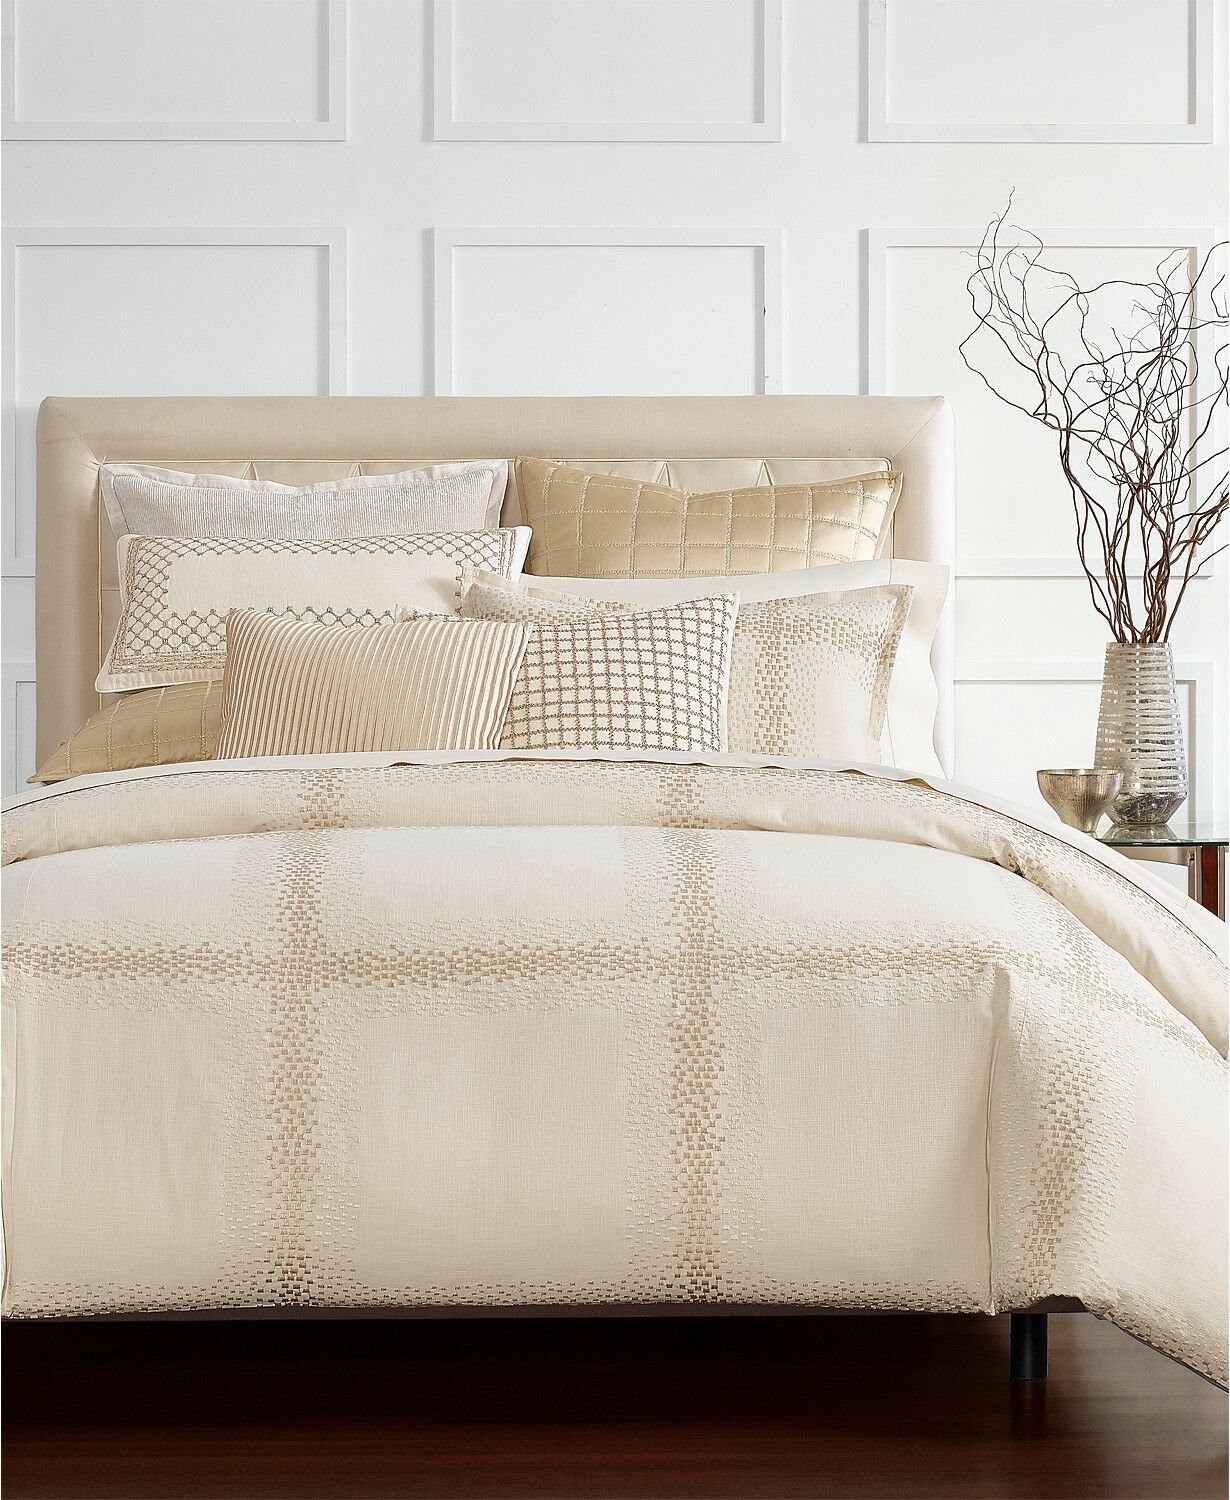 Hotel Collection Mosaic Grid Embroidered FULL QUEEN Comforter BEIGE Bedding I195